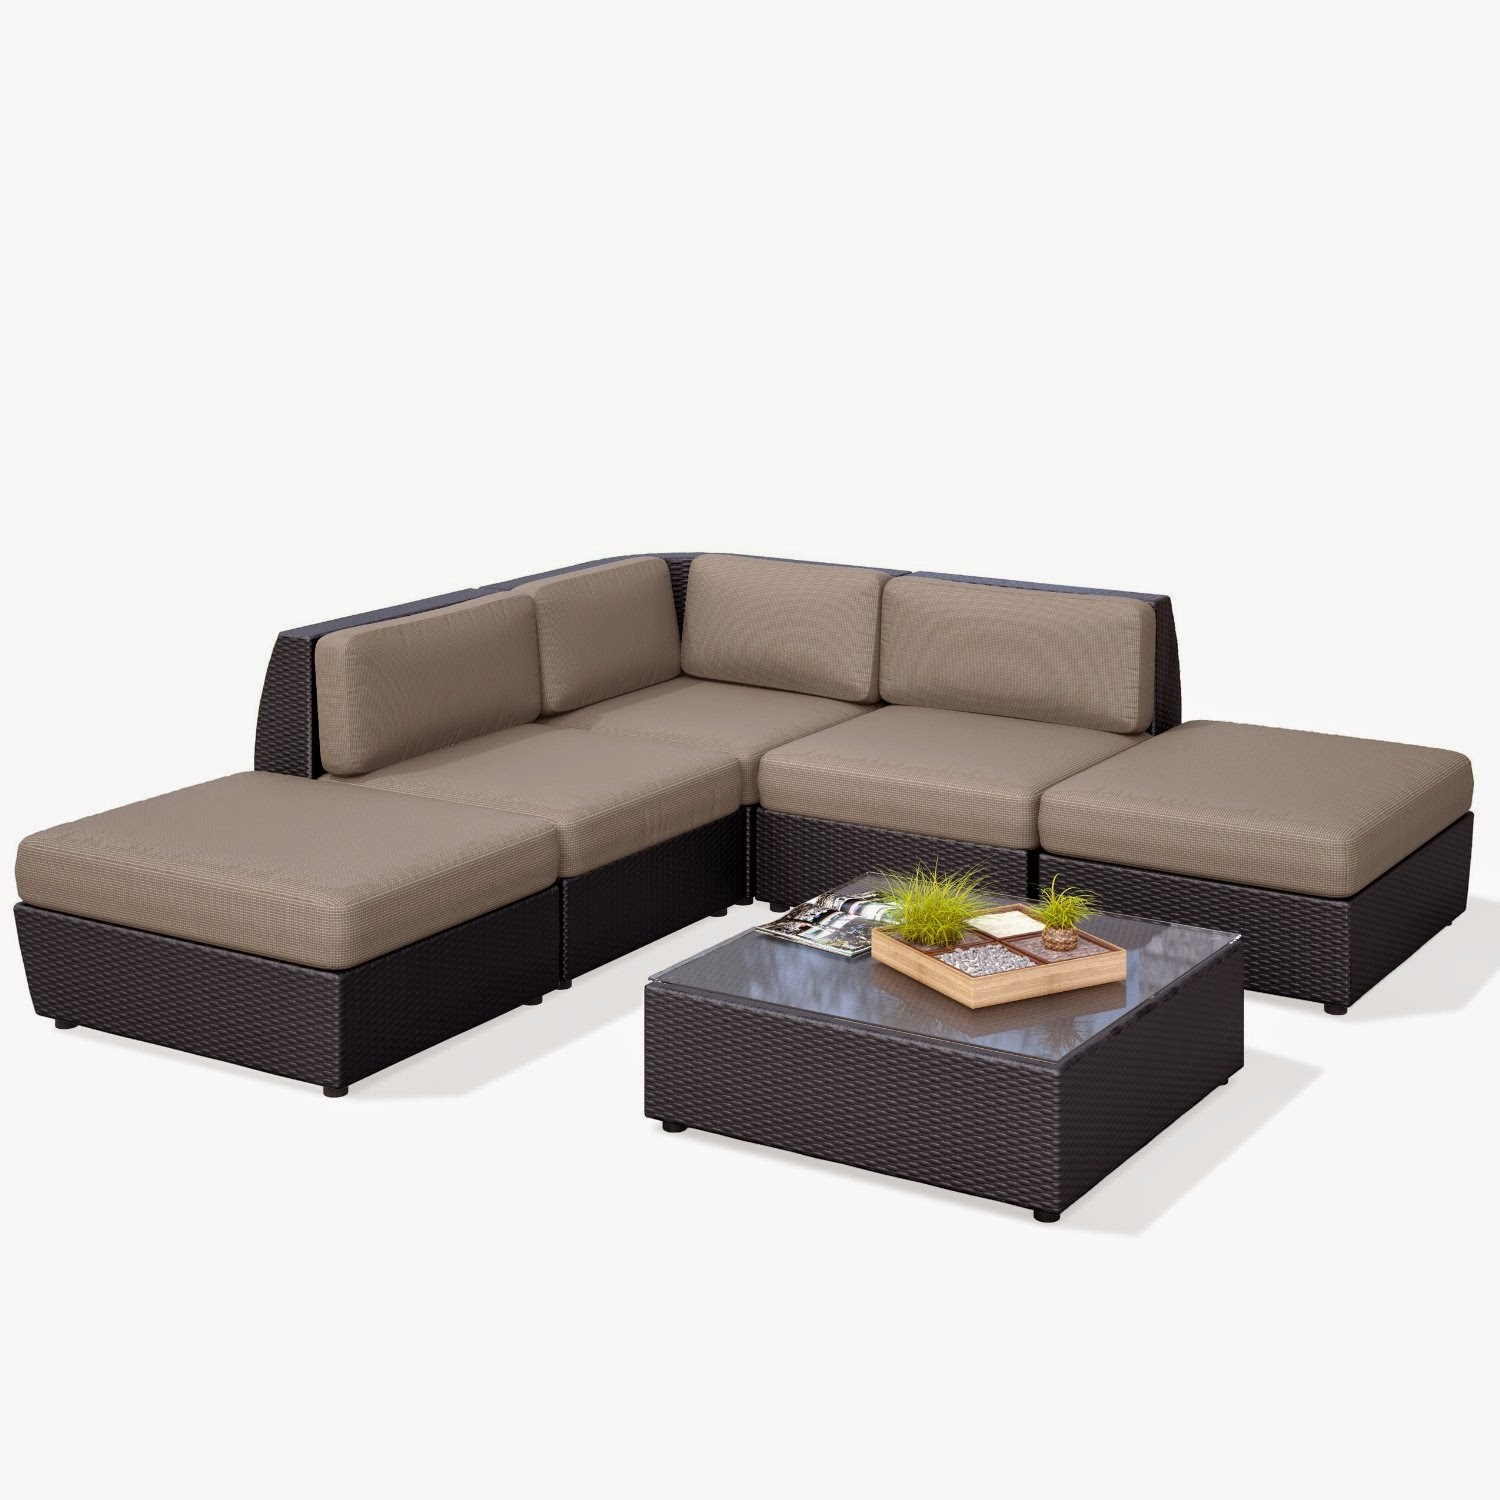 Curved sofa couch for sale large curved corner sofas for Sofa couch for sale